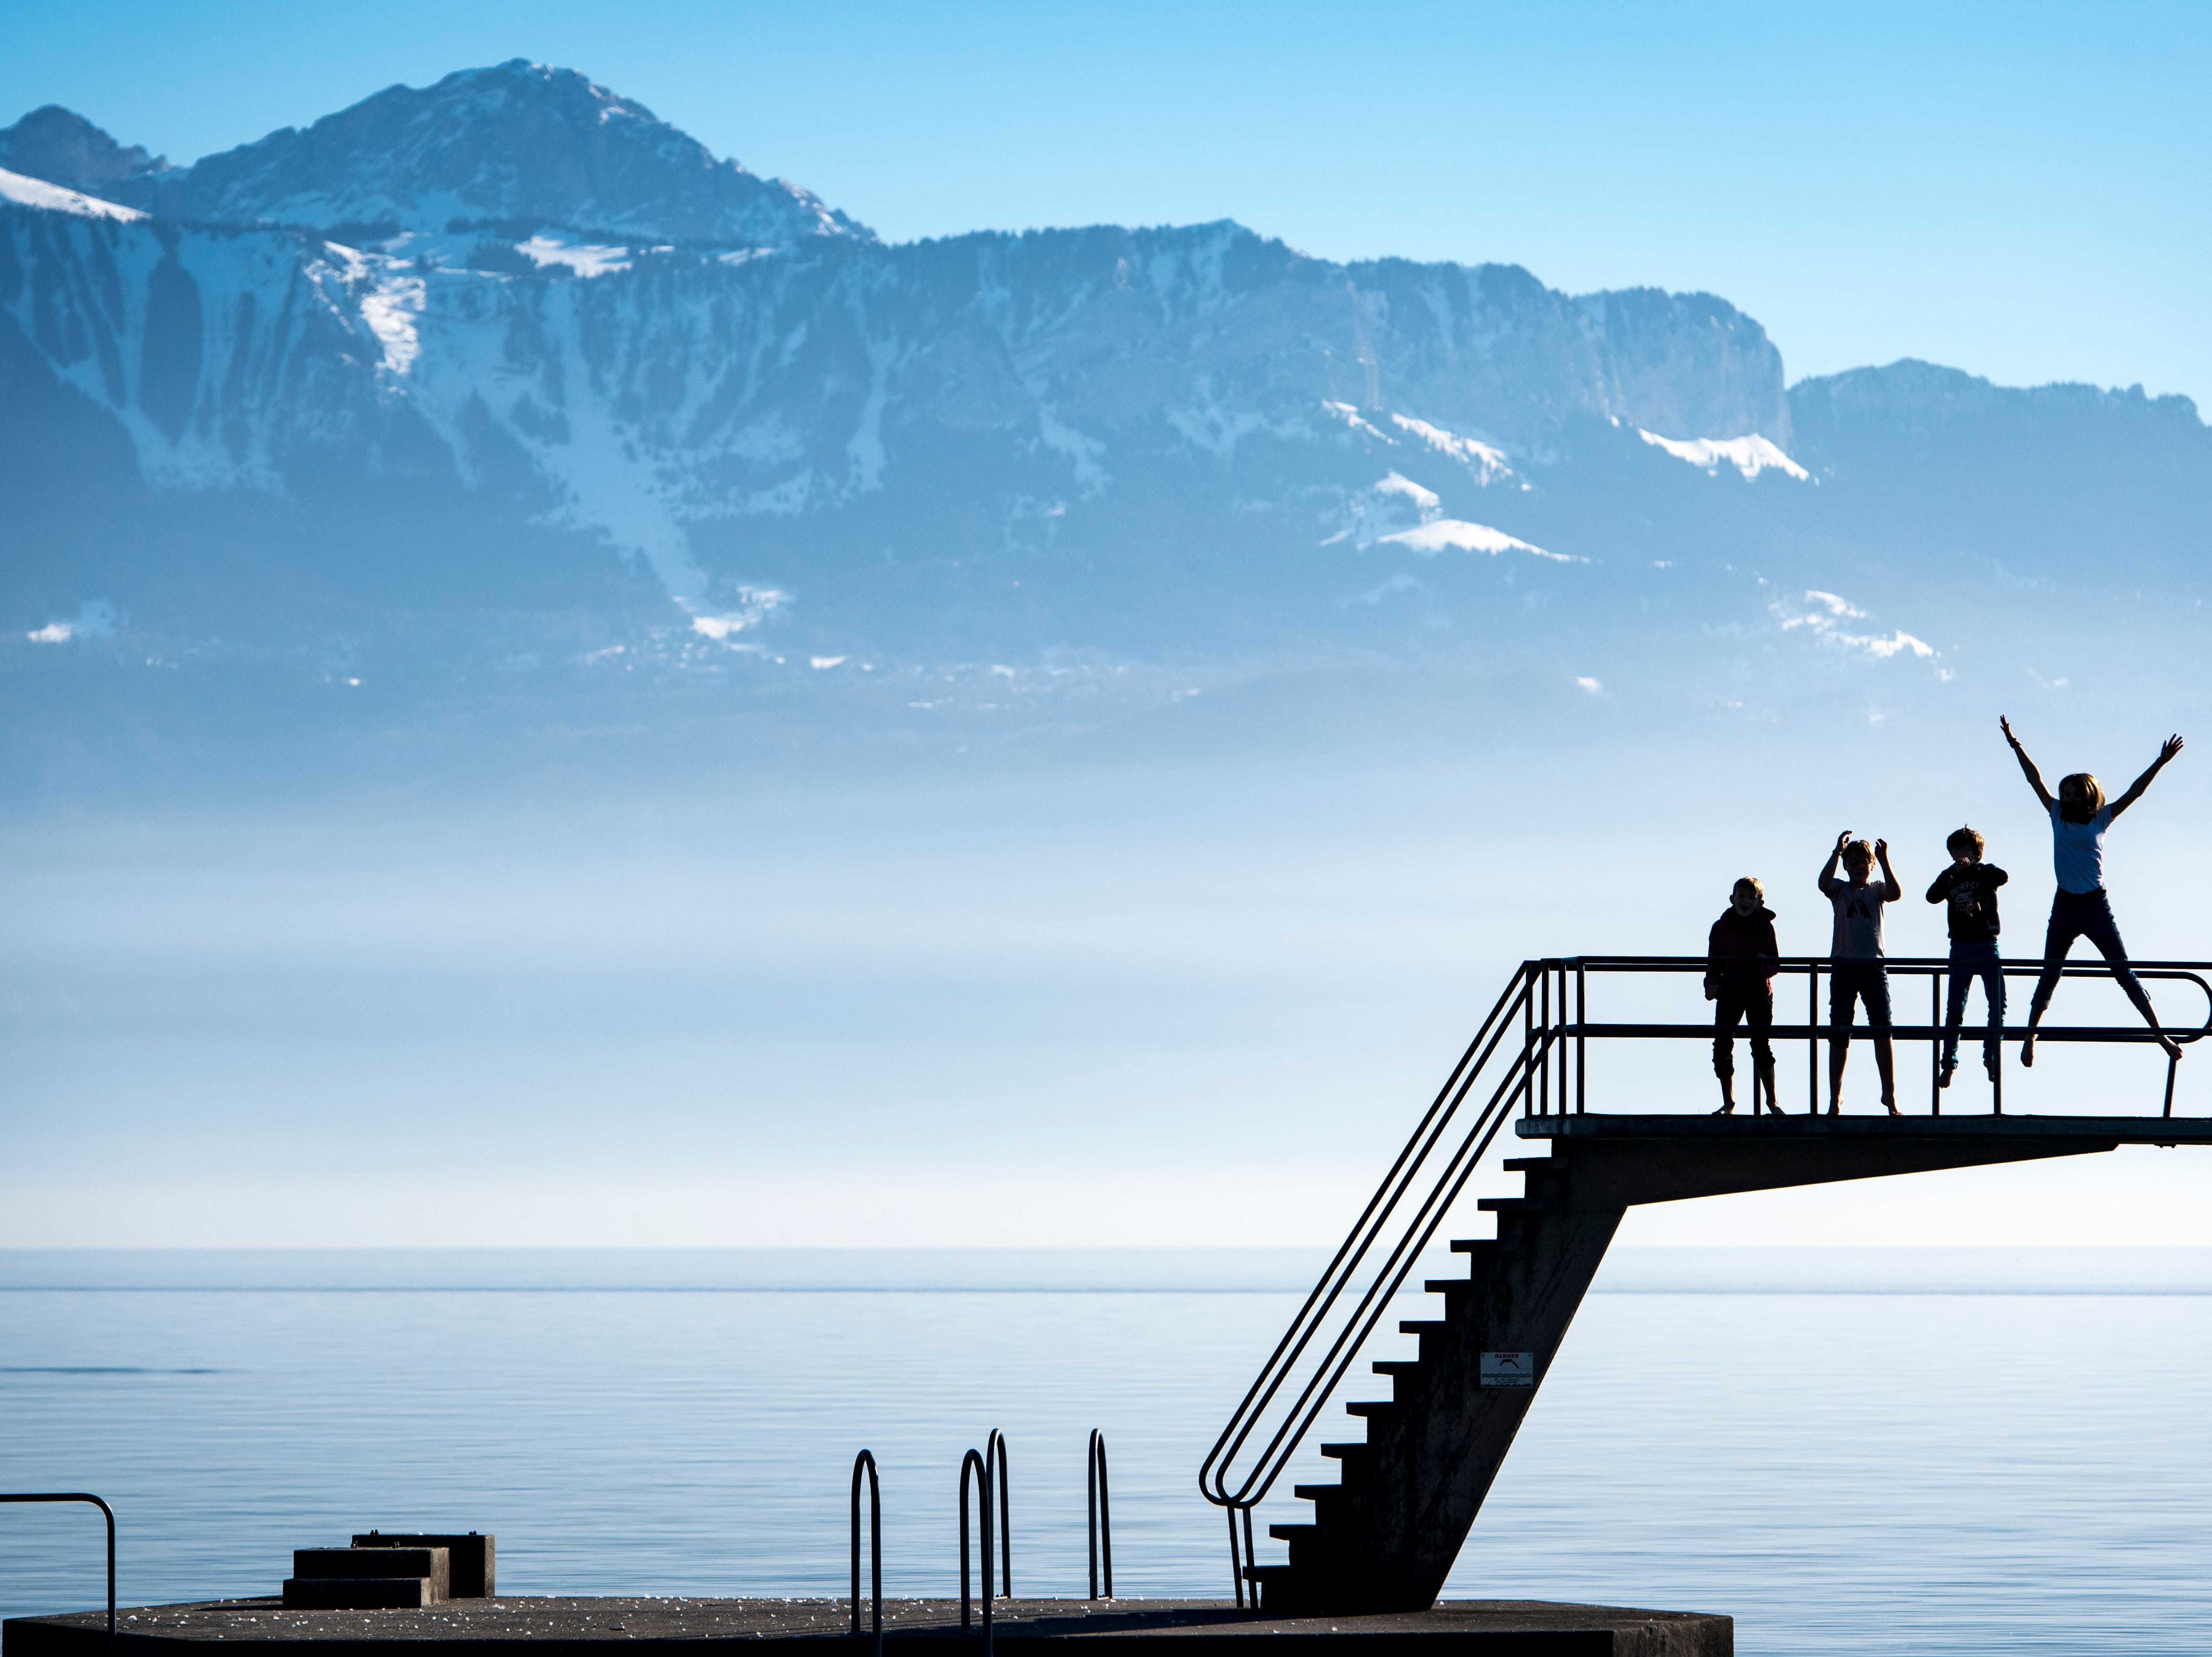 Kids enjoy the sunny and warm weather on a diving platform on the shore of the Lake Geneva in front of the Swiss and French Alps on a unusually warm winter day, in Lutry, Switzerland, Saturday, Feb. 16, 2019.